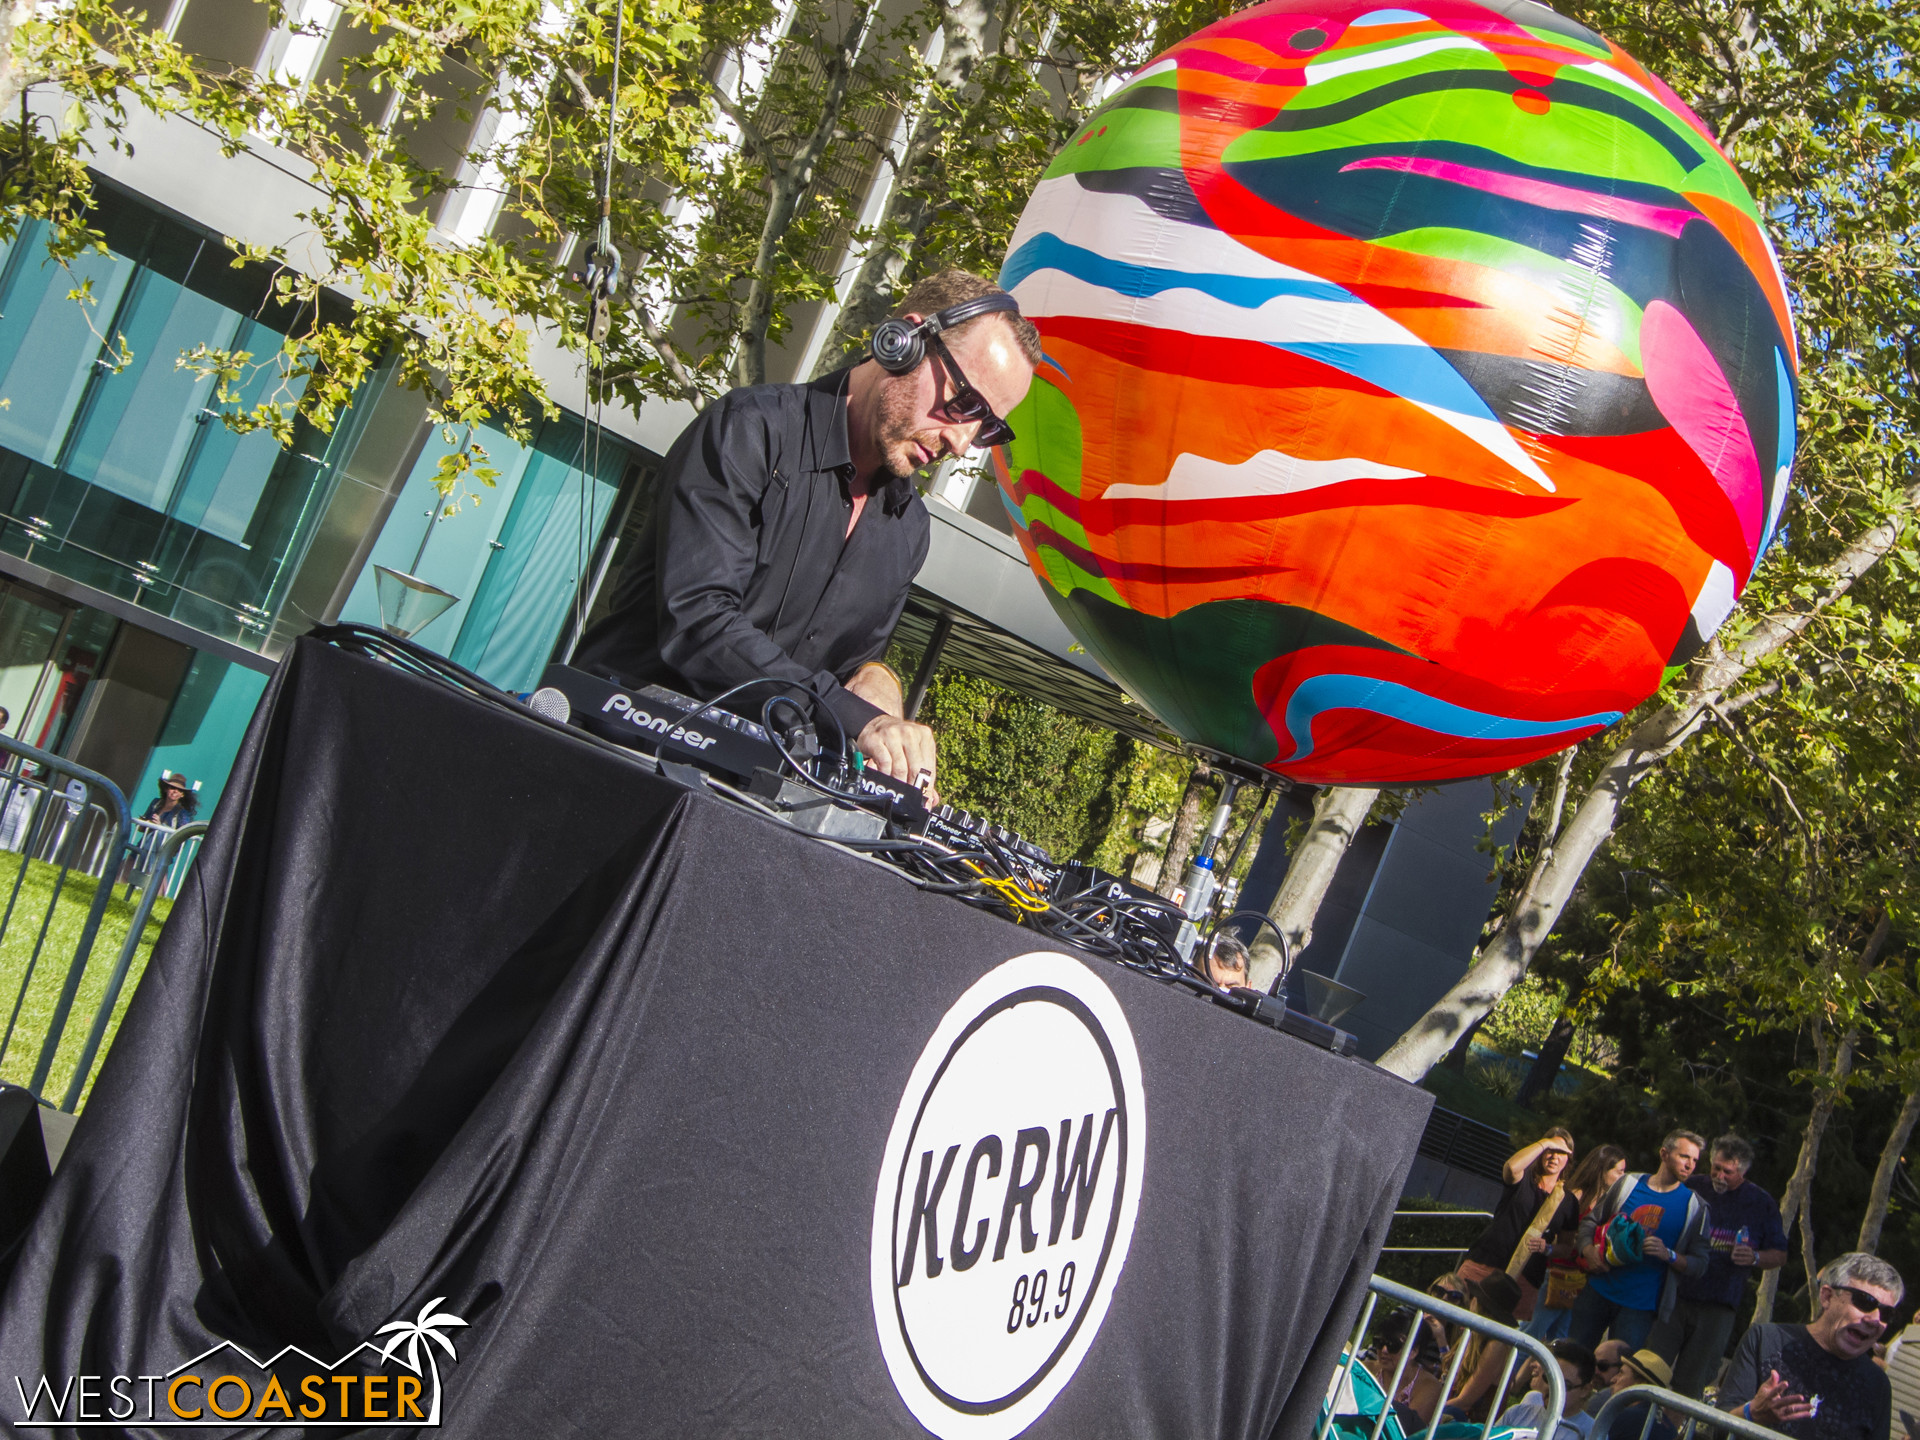 KCRW DJ Jason Bentley provided emcee services and house music prior to the opener.